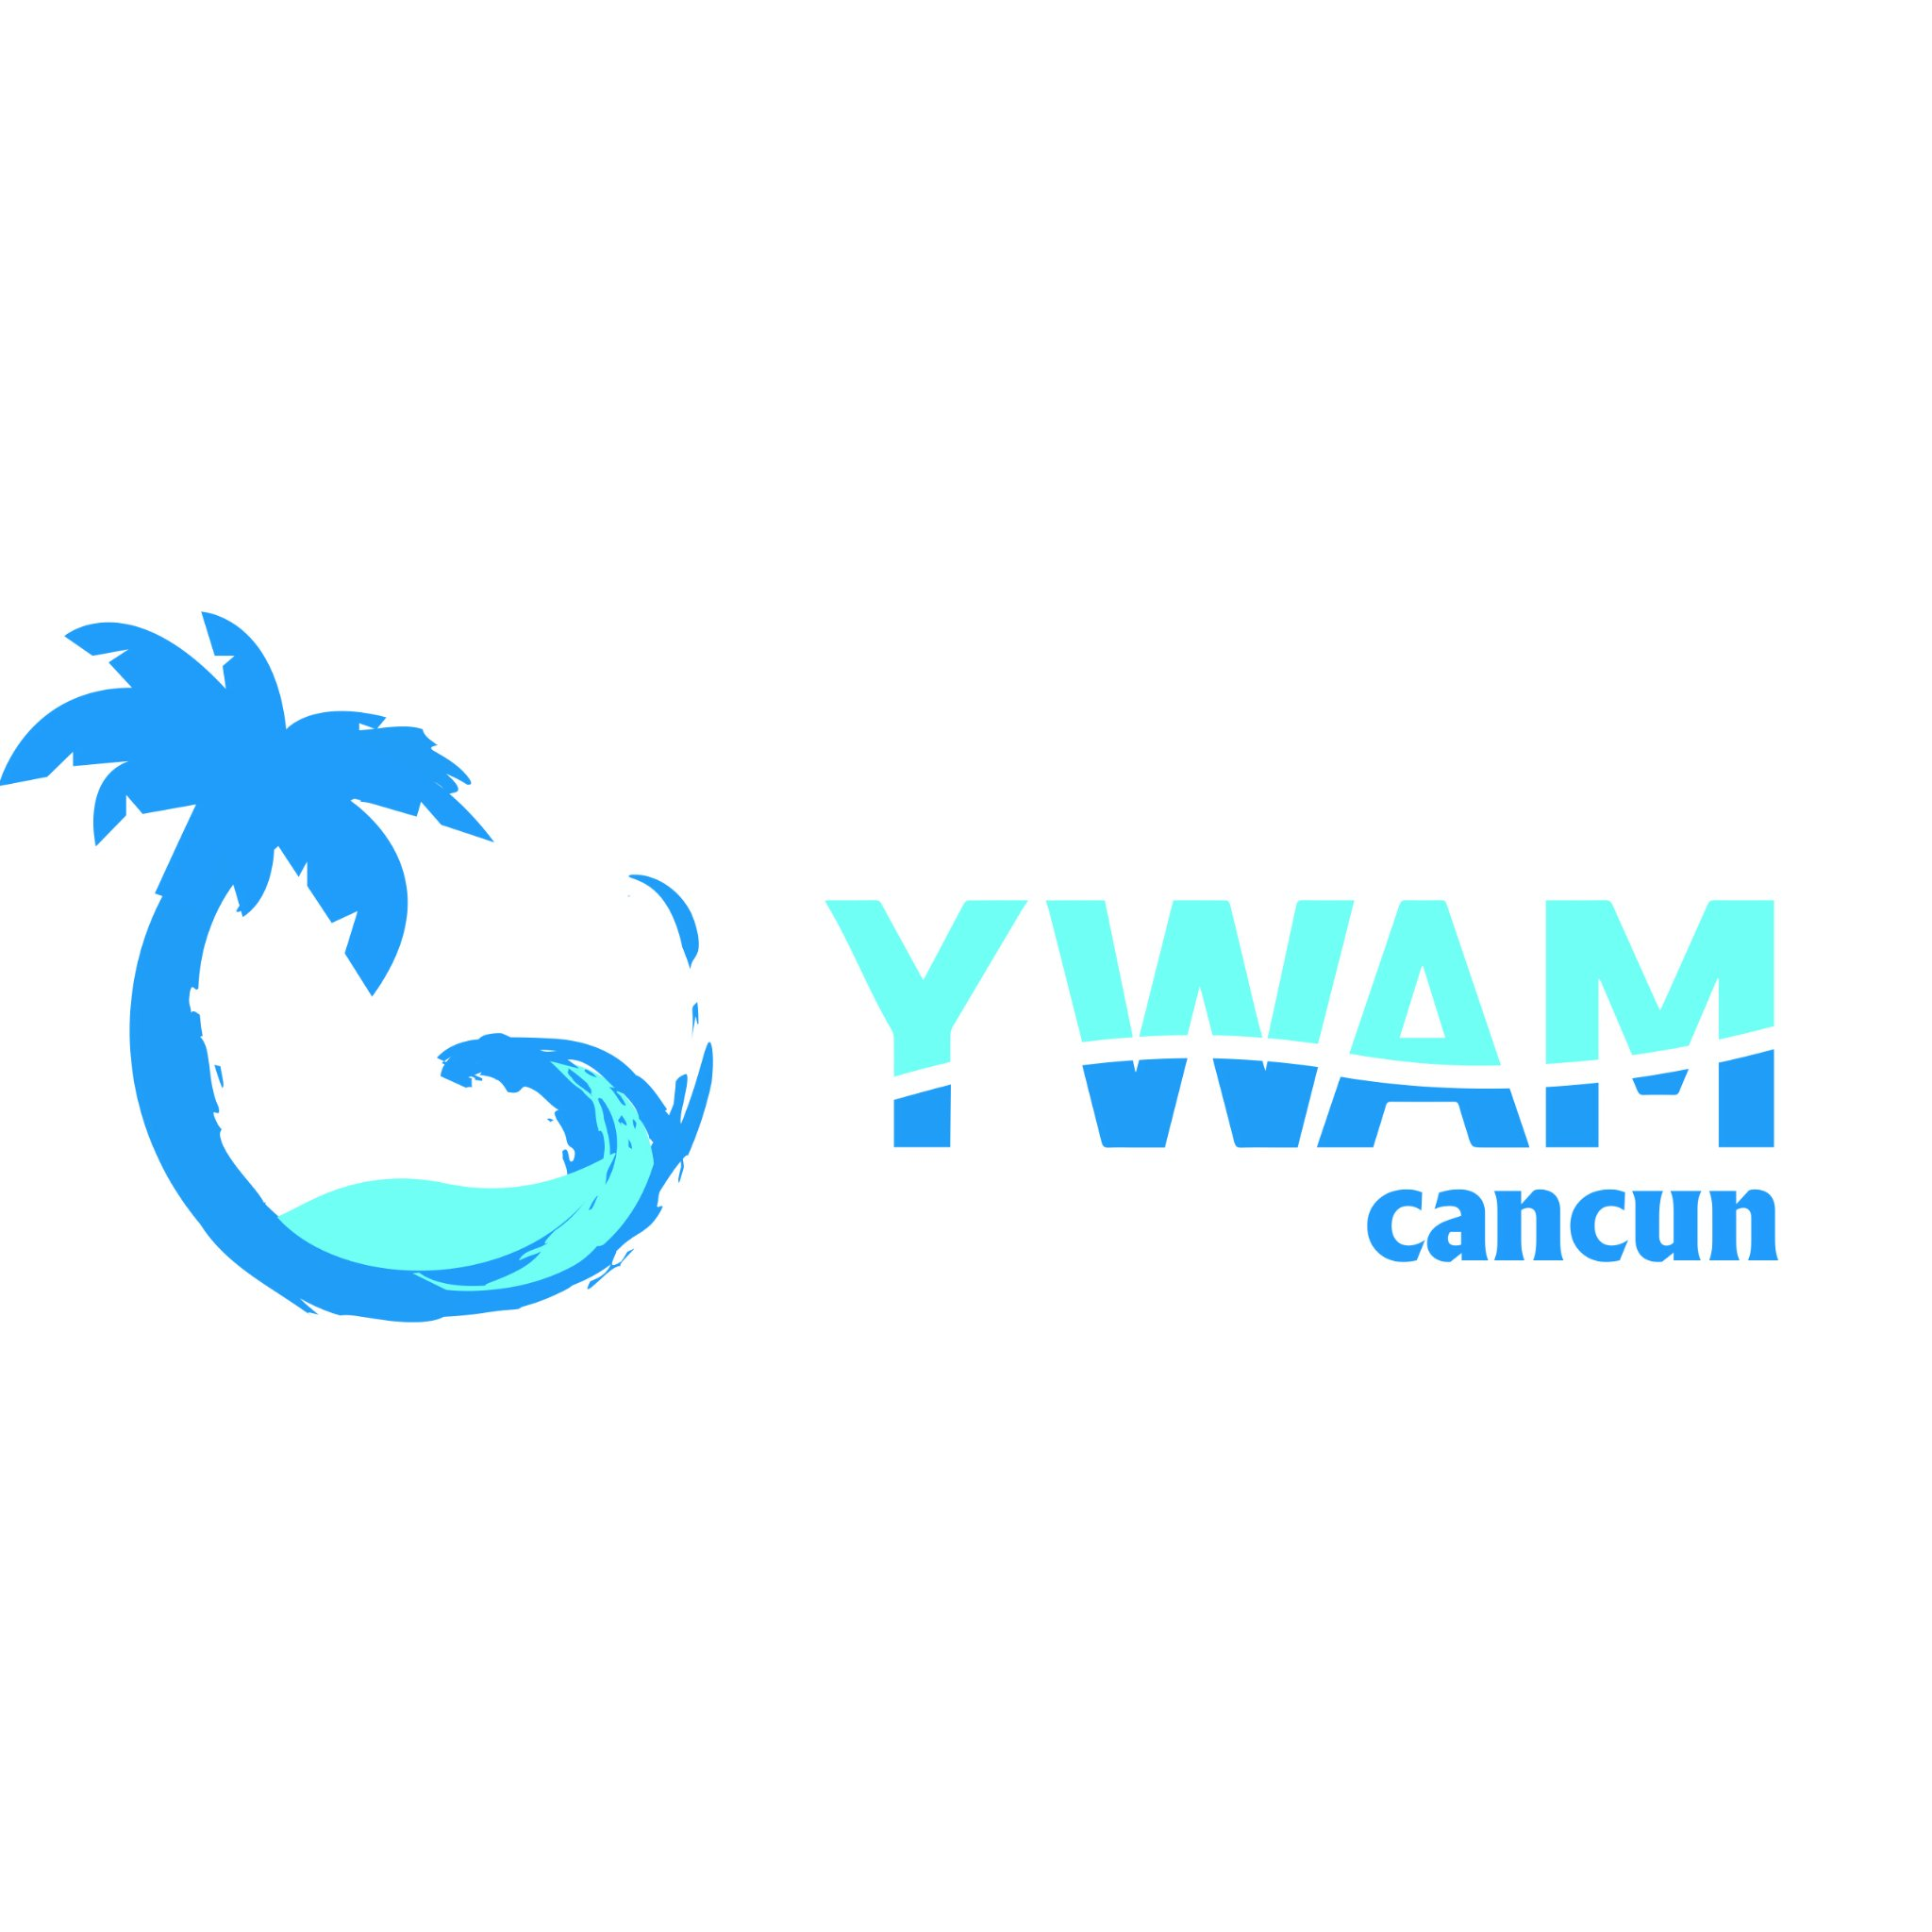 Ywam Cancun Mexico on Twitter: